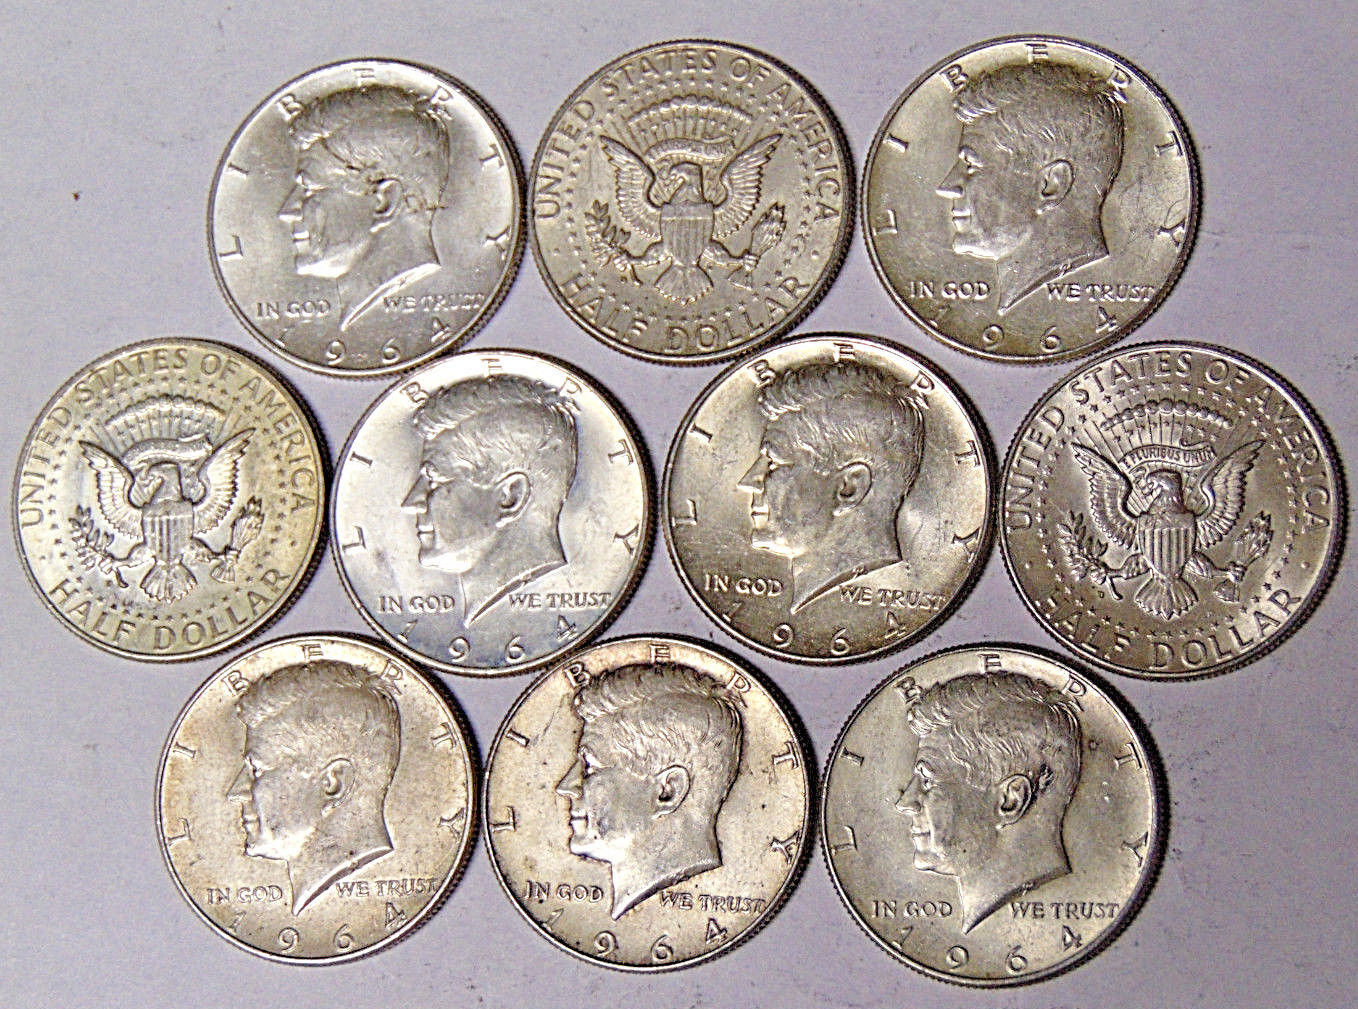 Lot of 10 1964 Kennedy Silver Half Dollars $5 Face Value 90% Silver Coins